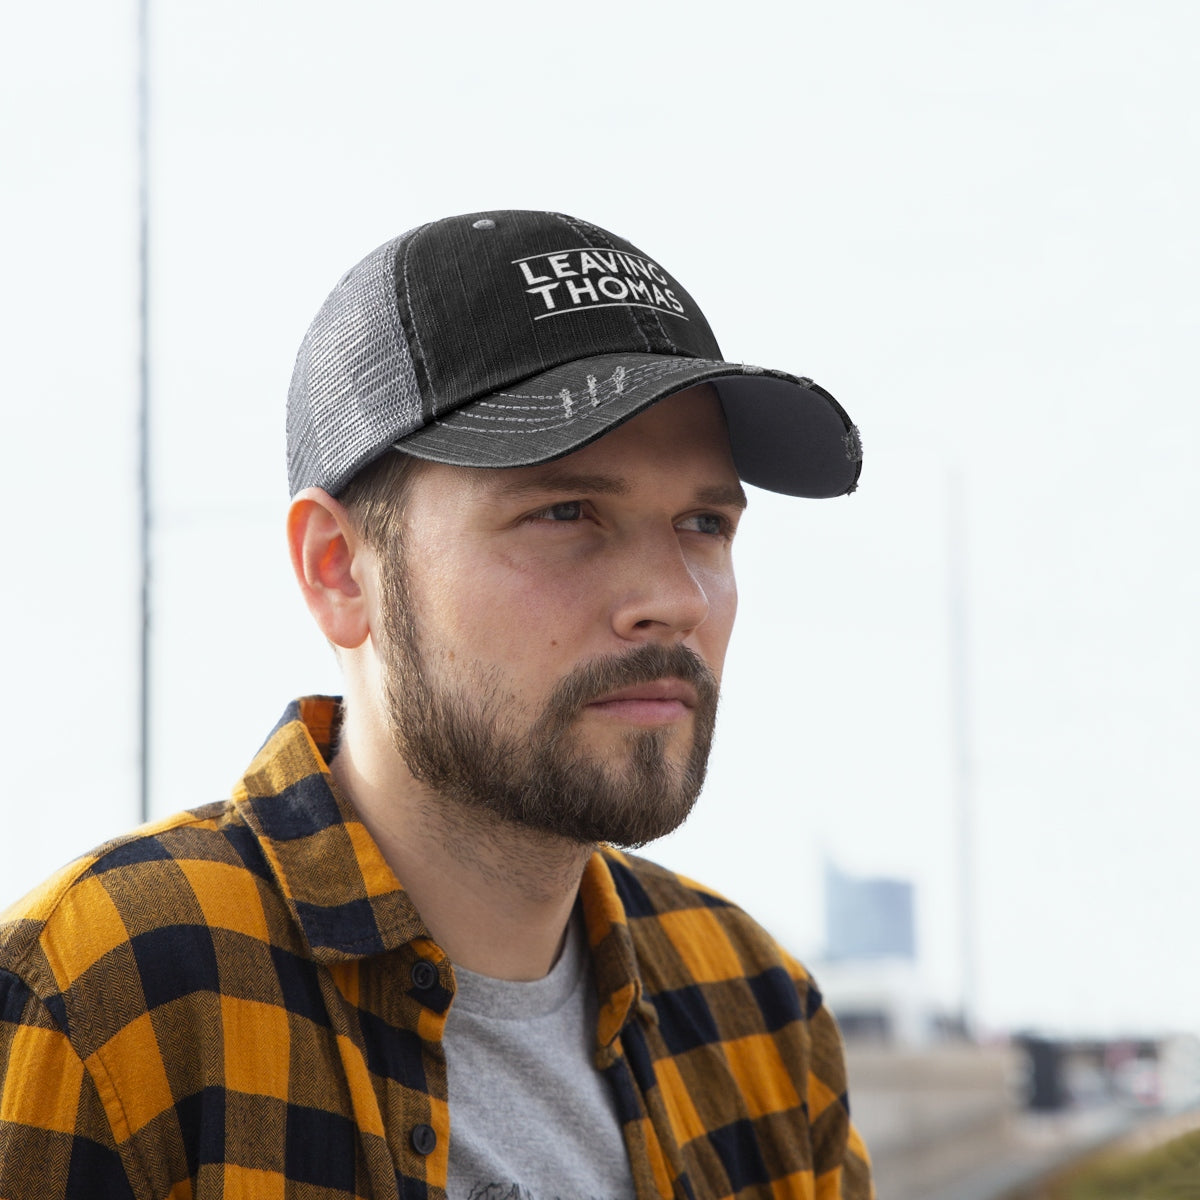 """Leaving Thomas"" Trucker Hat"